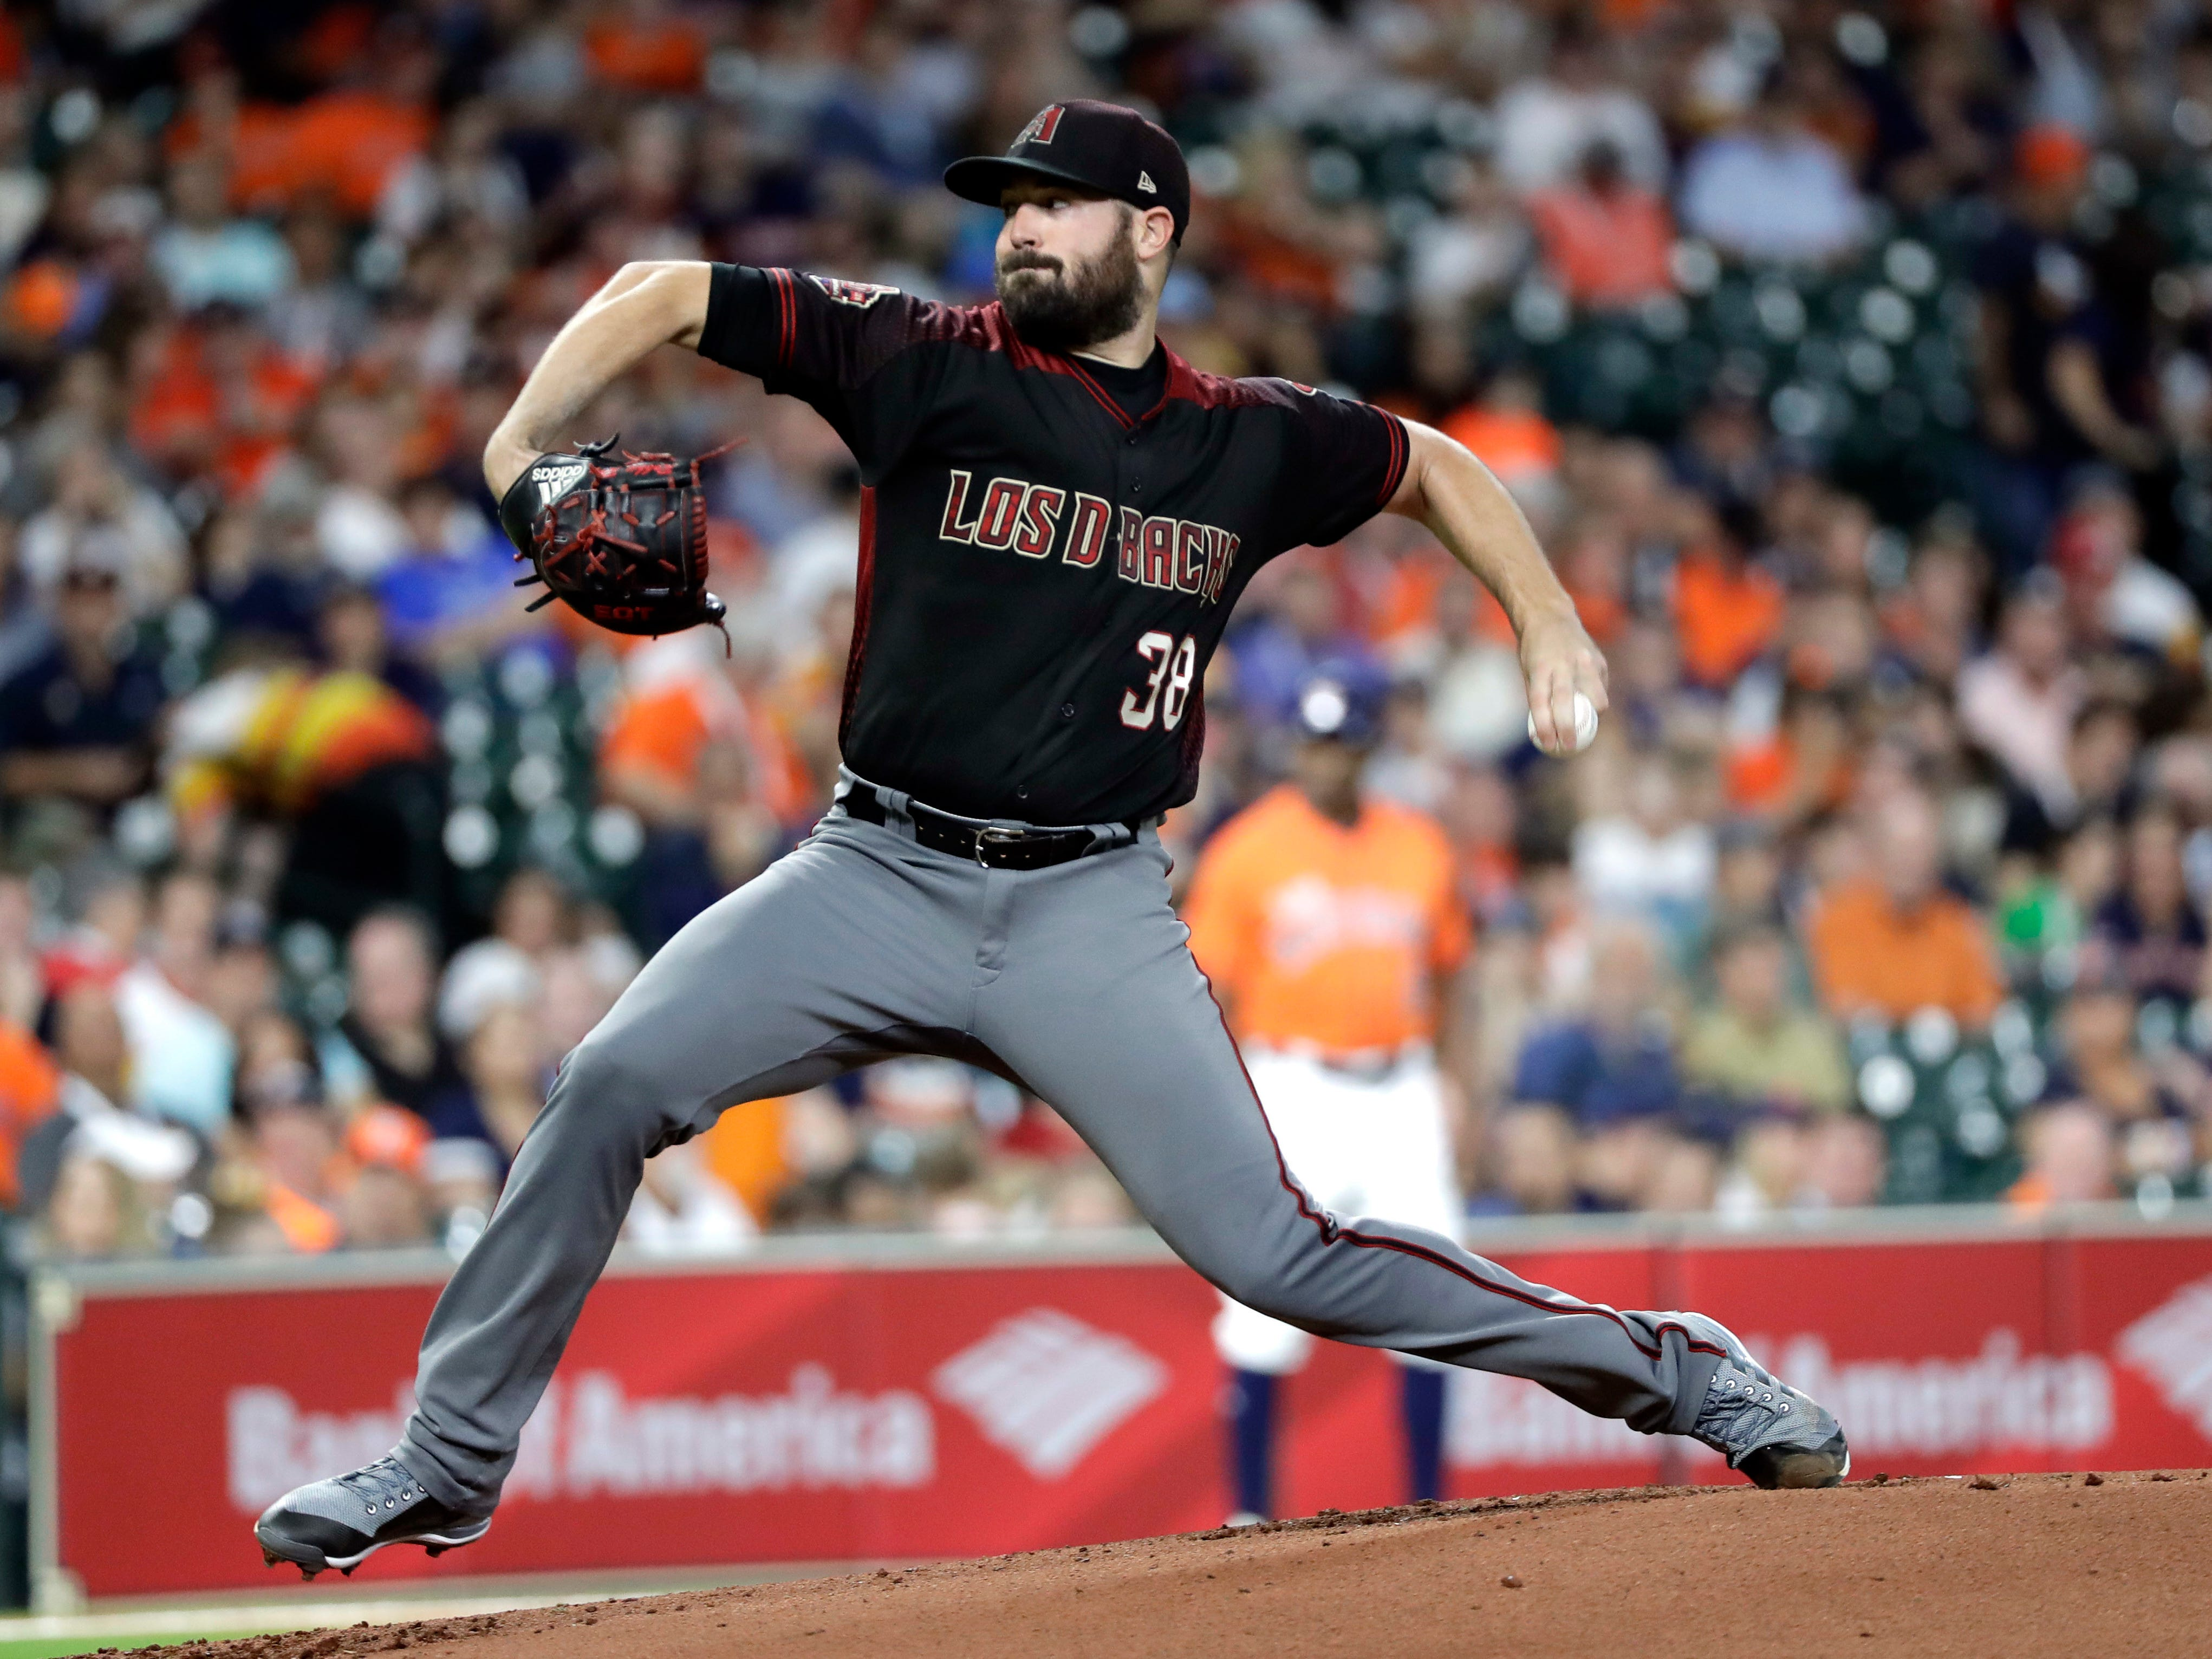 Arizona Diamondbacks starting pitcher Robbie Ray throws against the Houston Astros during the first inning of a baseball game Friday, Sept. 14, 2018, in Houston.